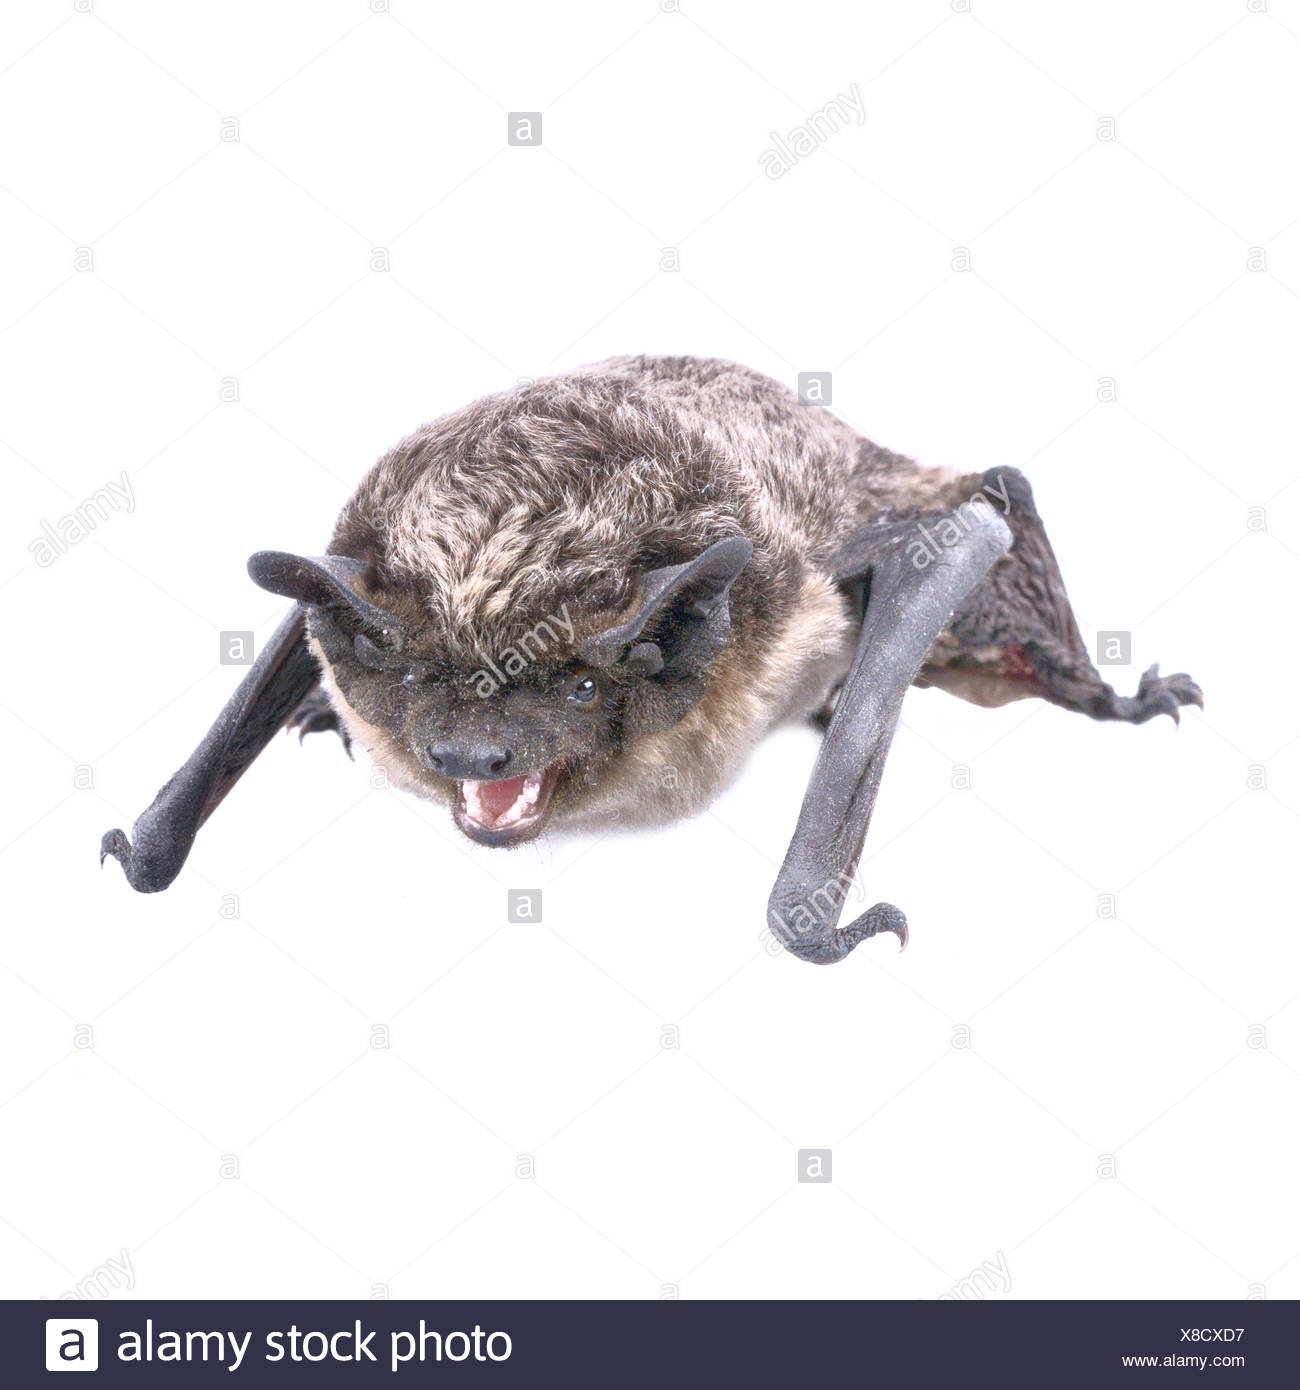 Angry bat on a white background - Stock Image